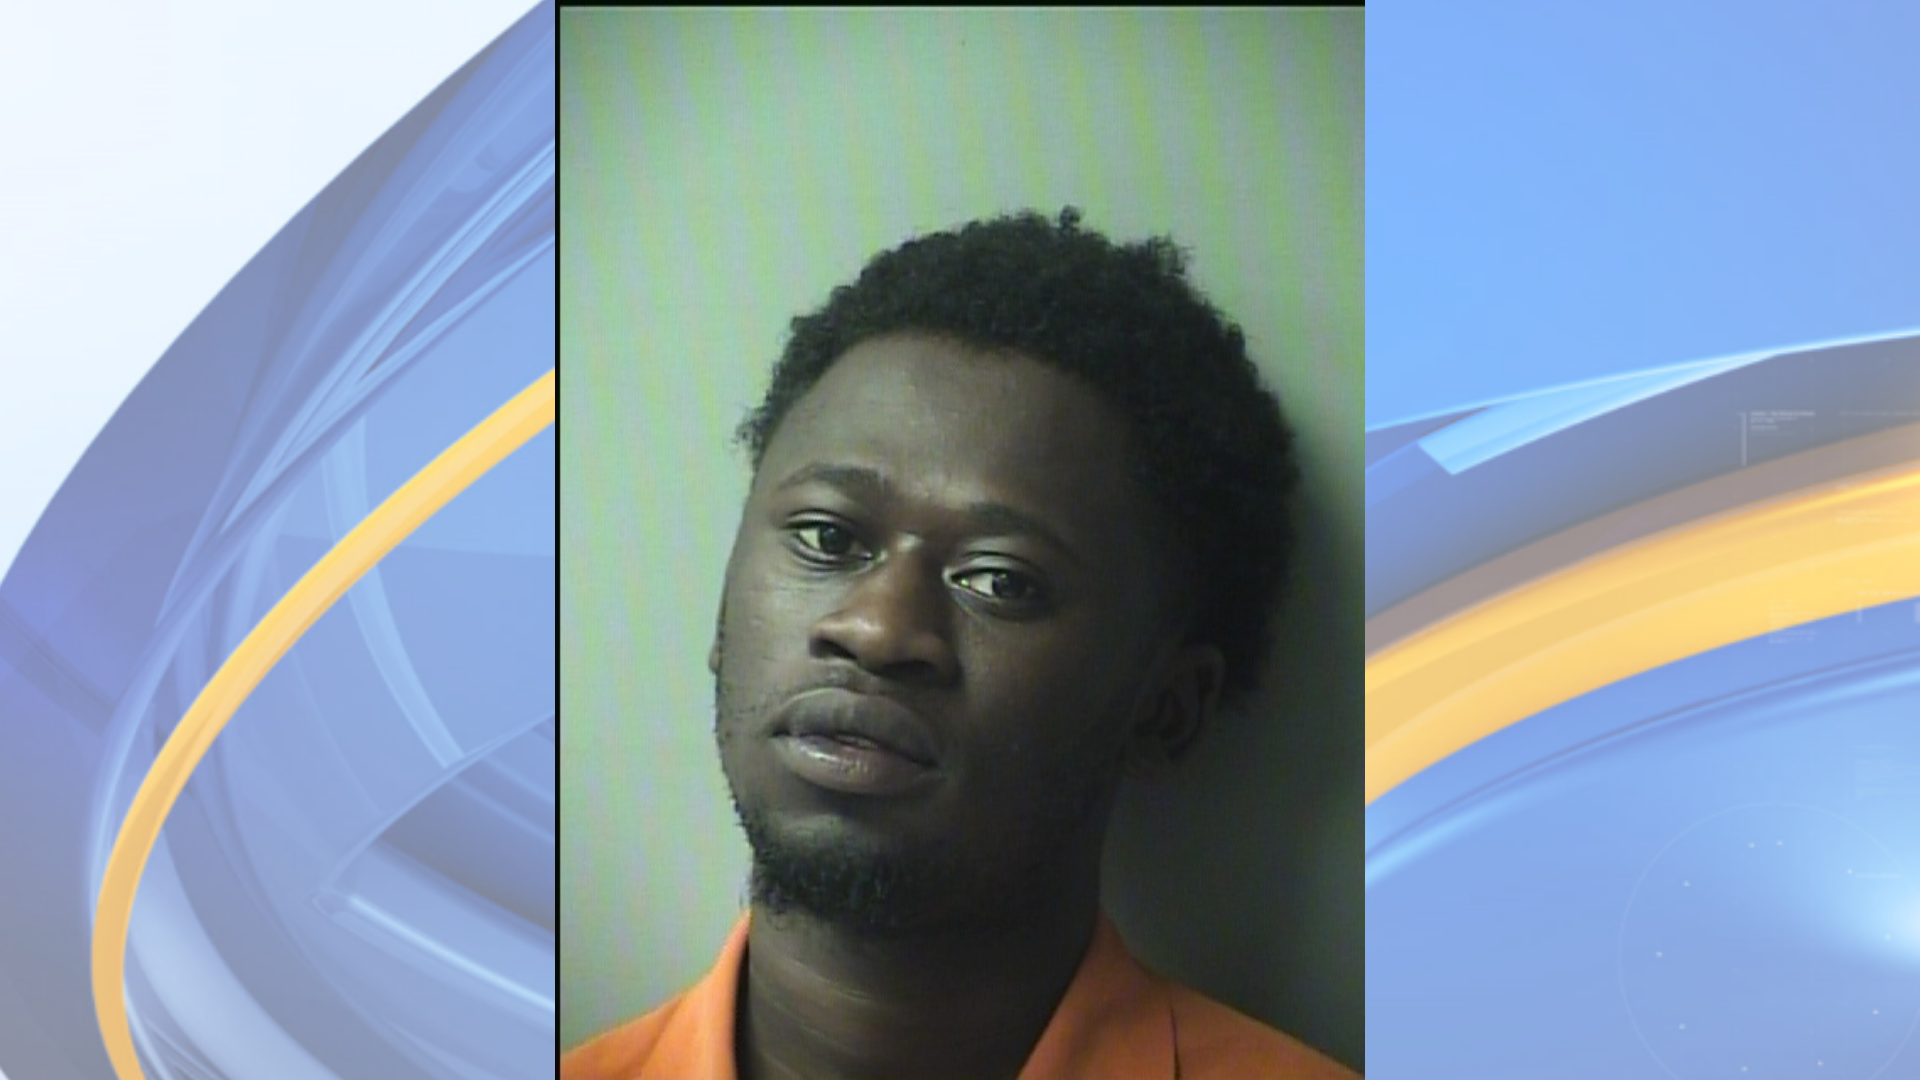 Man arrested after Okaloosa Sheriffs found narcotics and $12,000 in his car